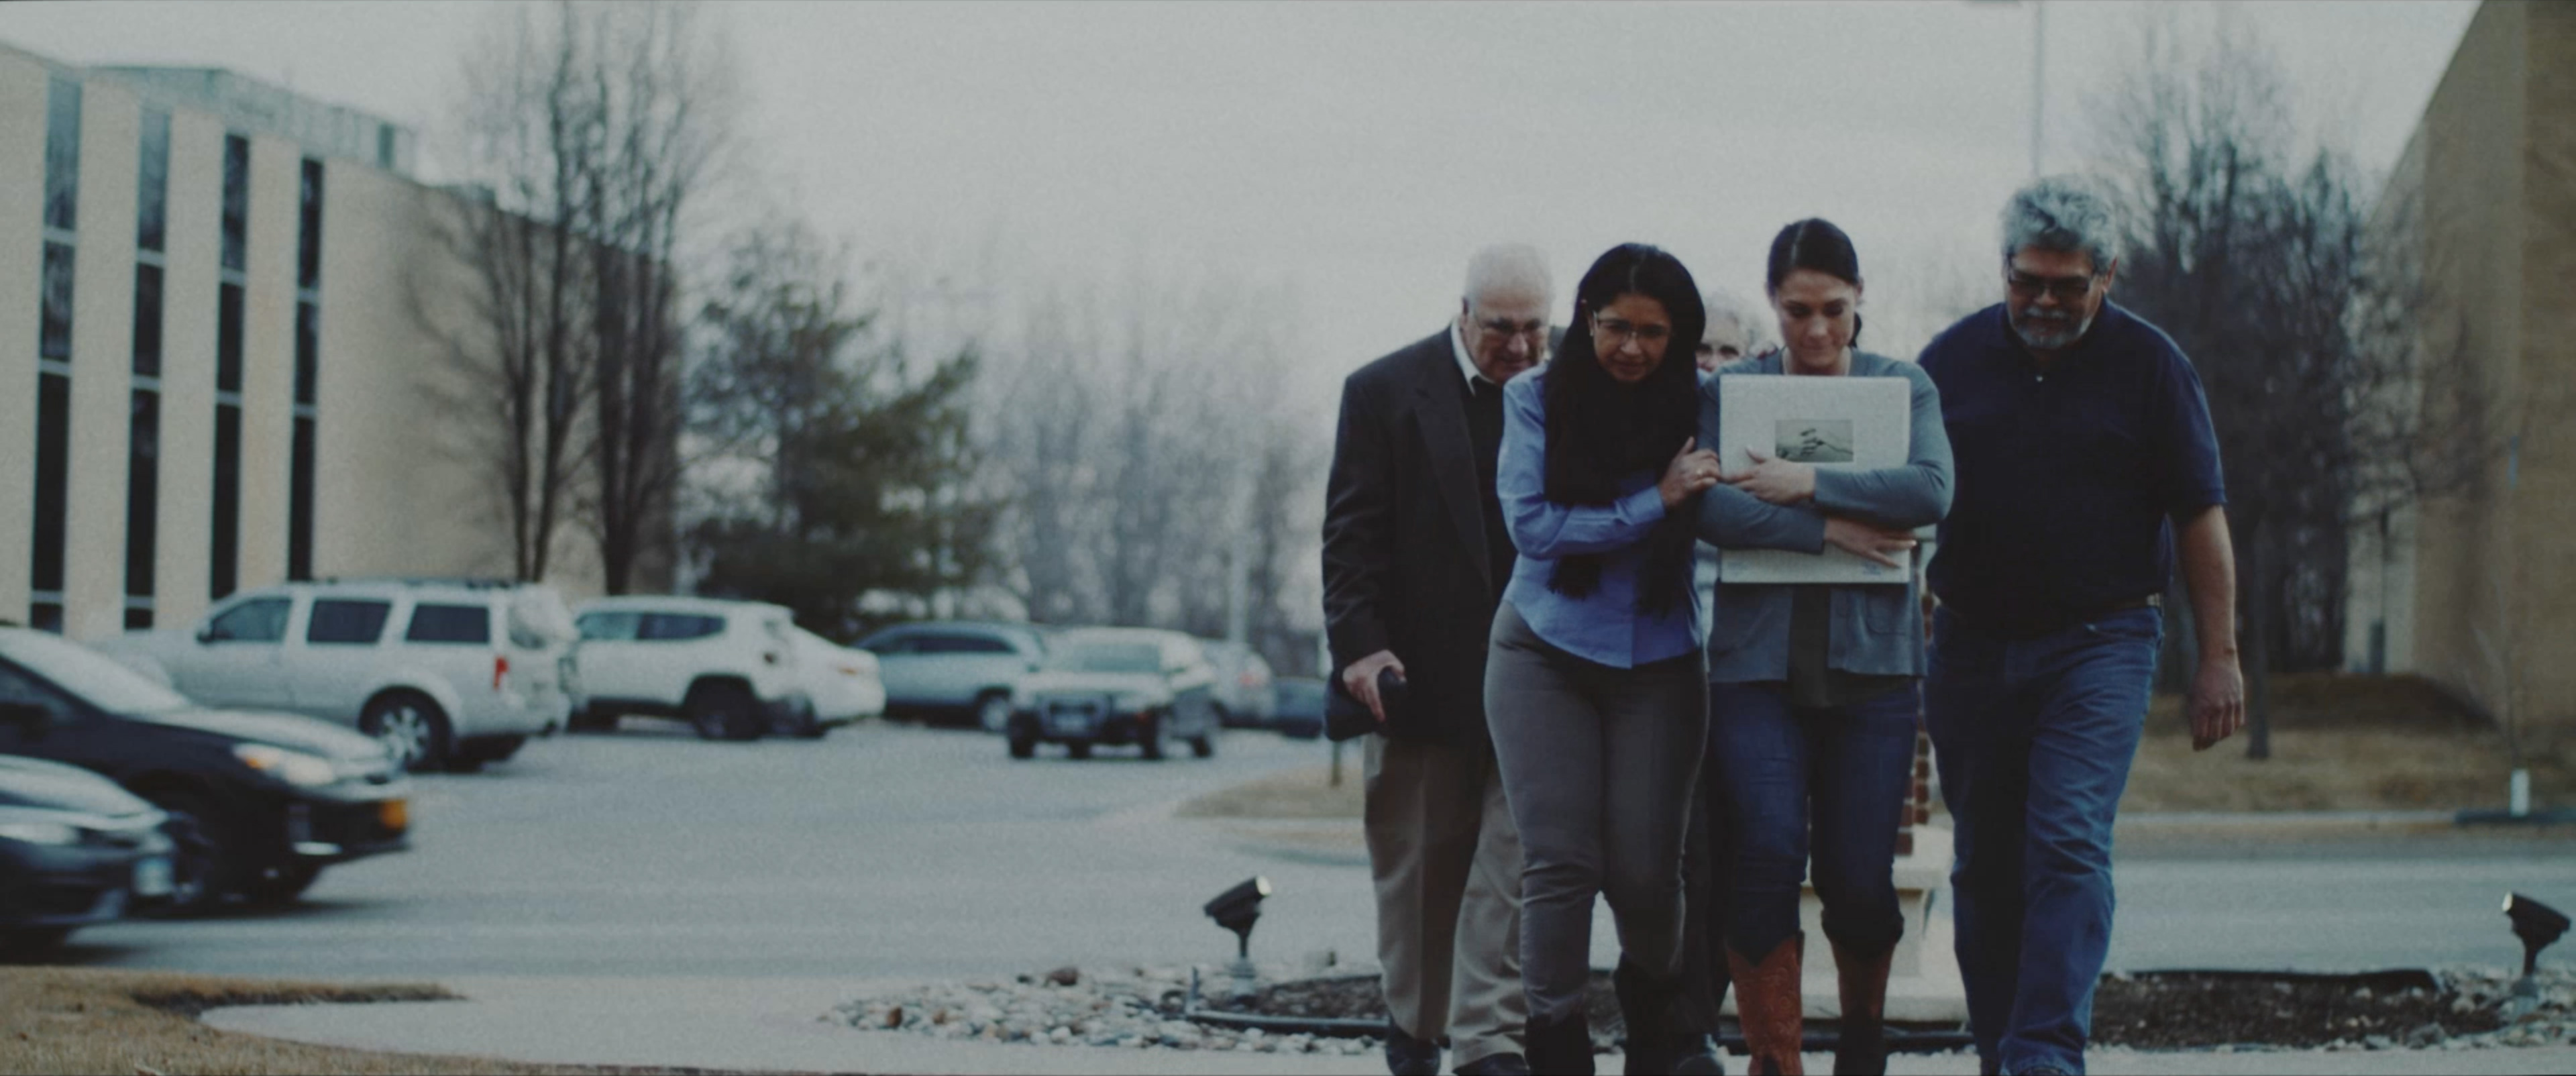 New Ad Depicts Grieving Widow Turned Away by Funeral Home Because She's a Lesbian